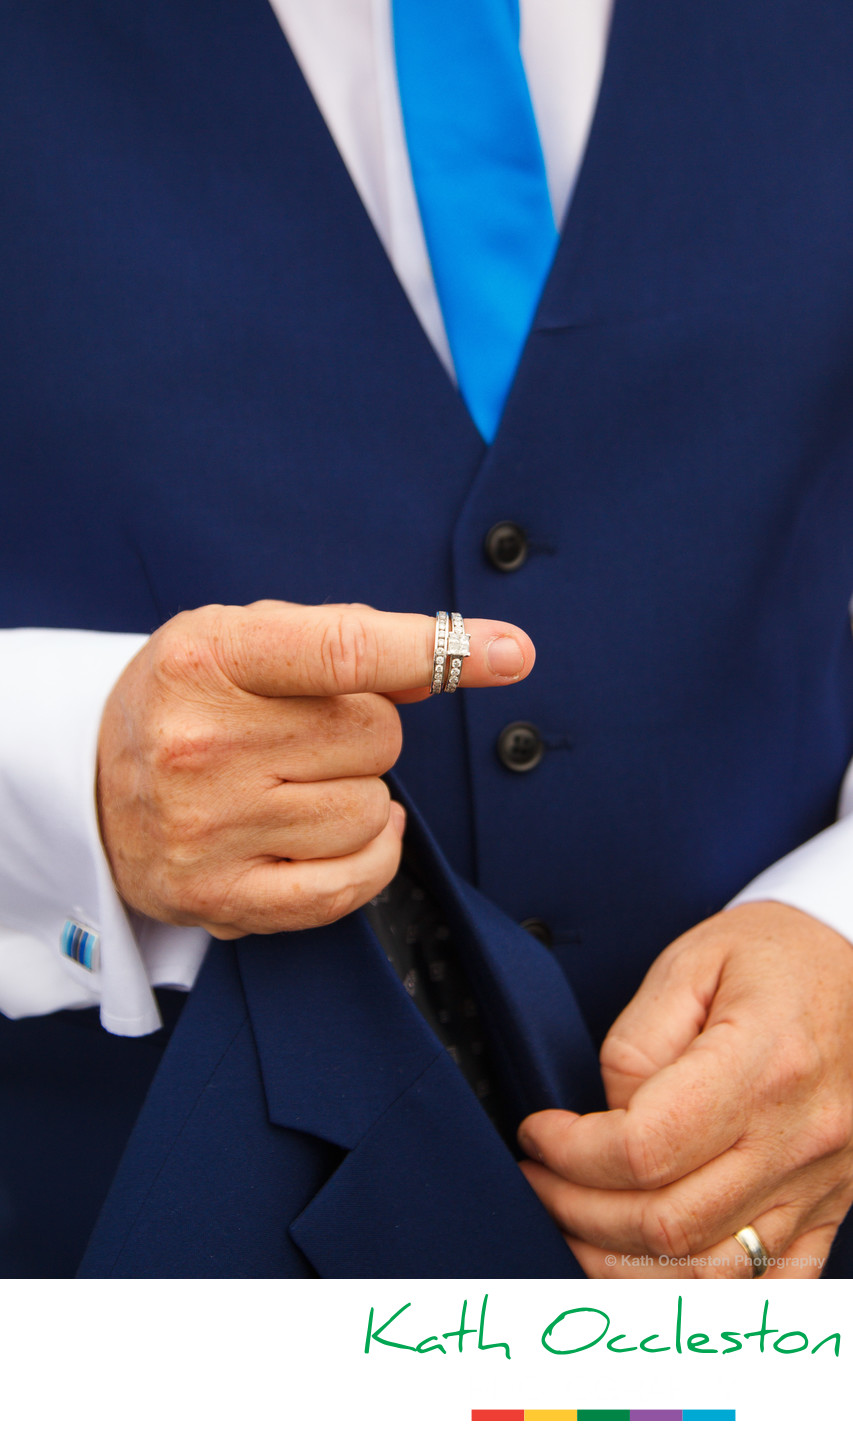 Groom with wedding rings on finger